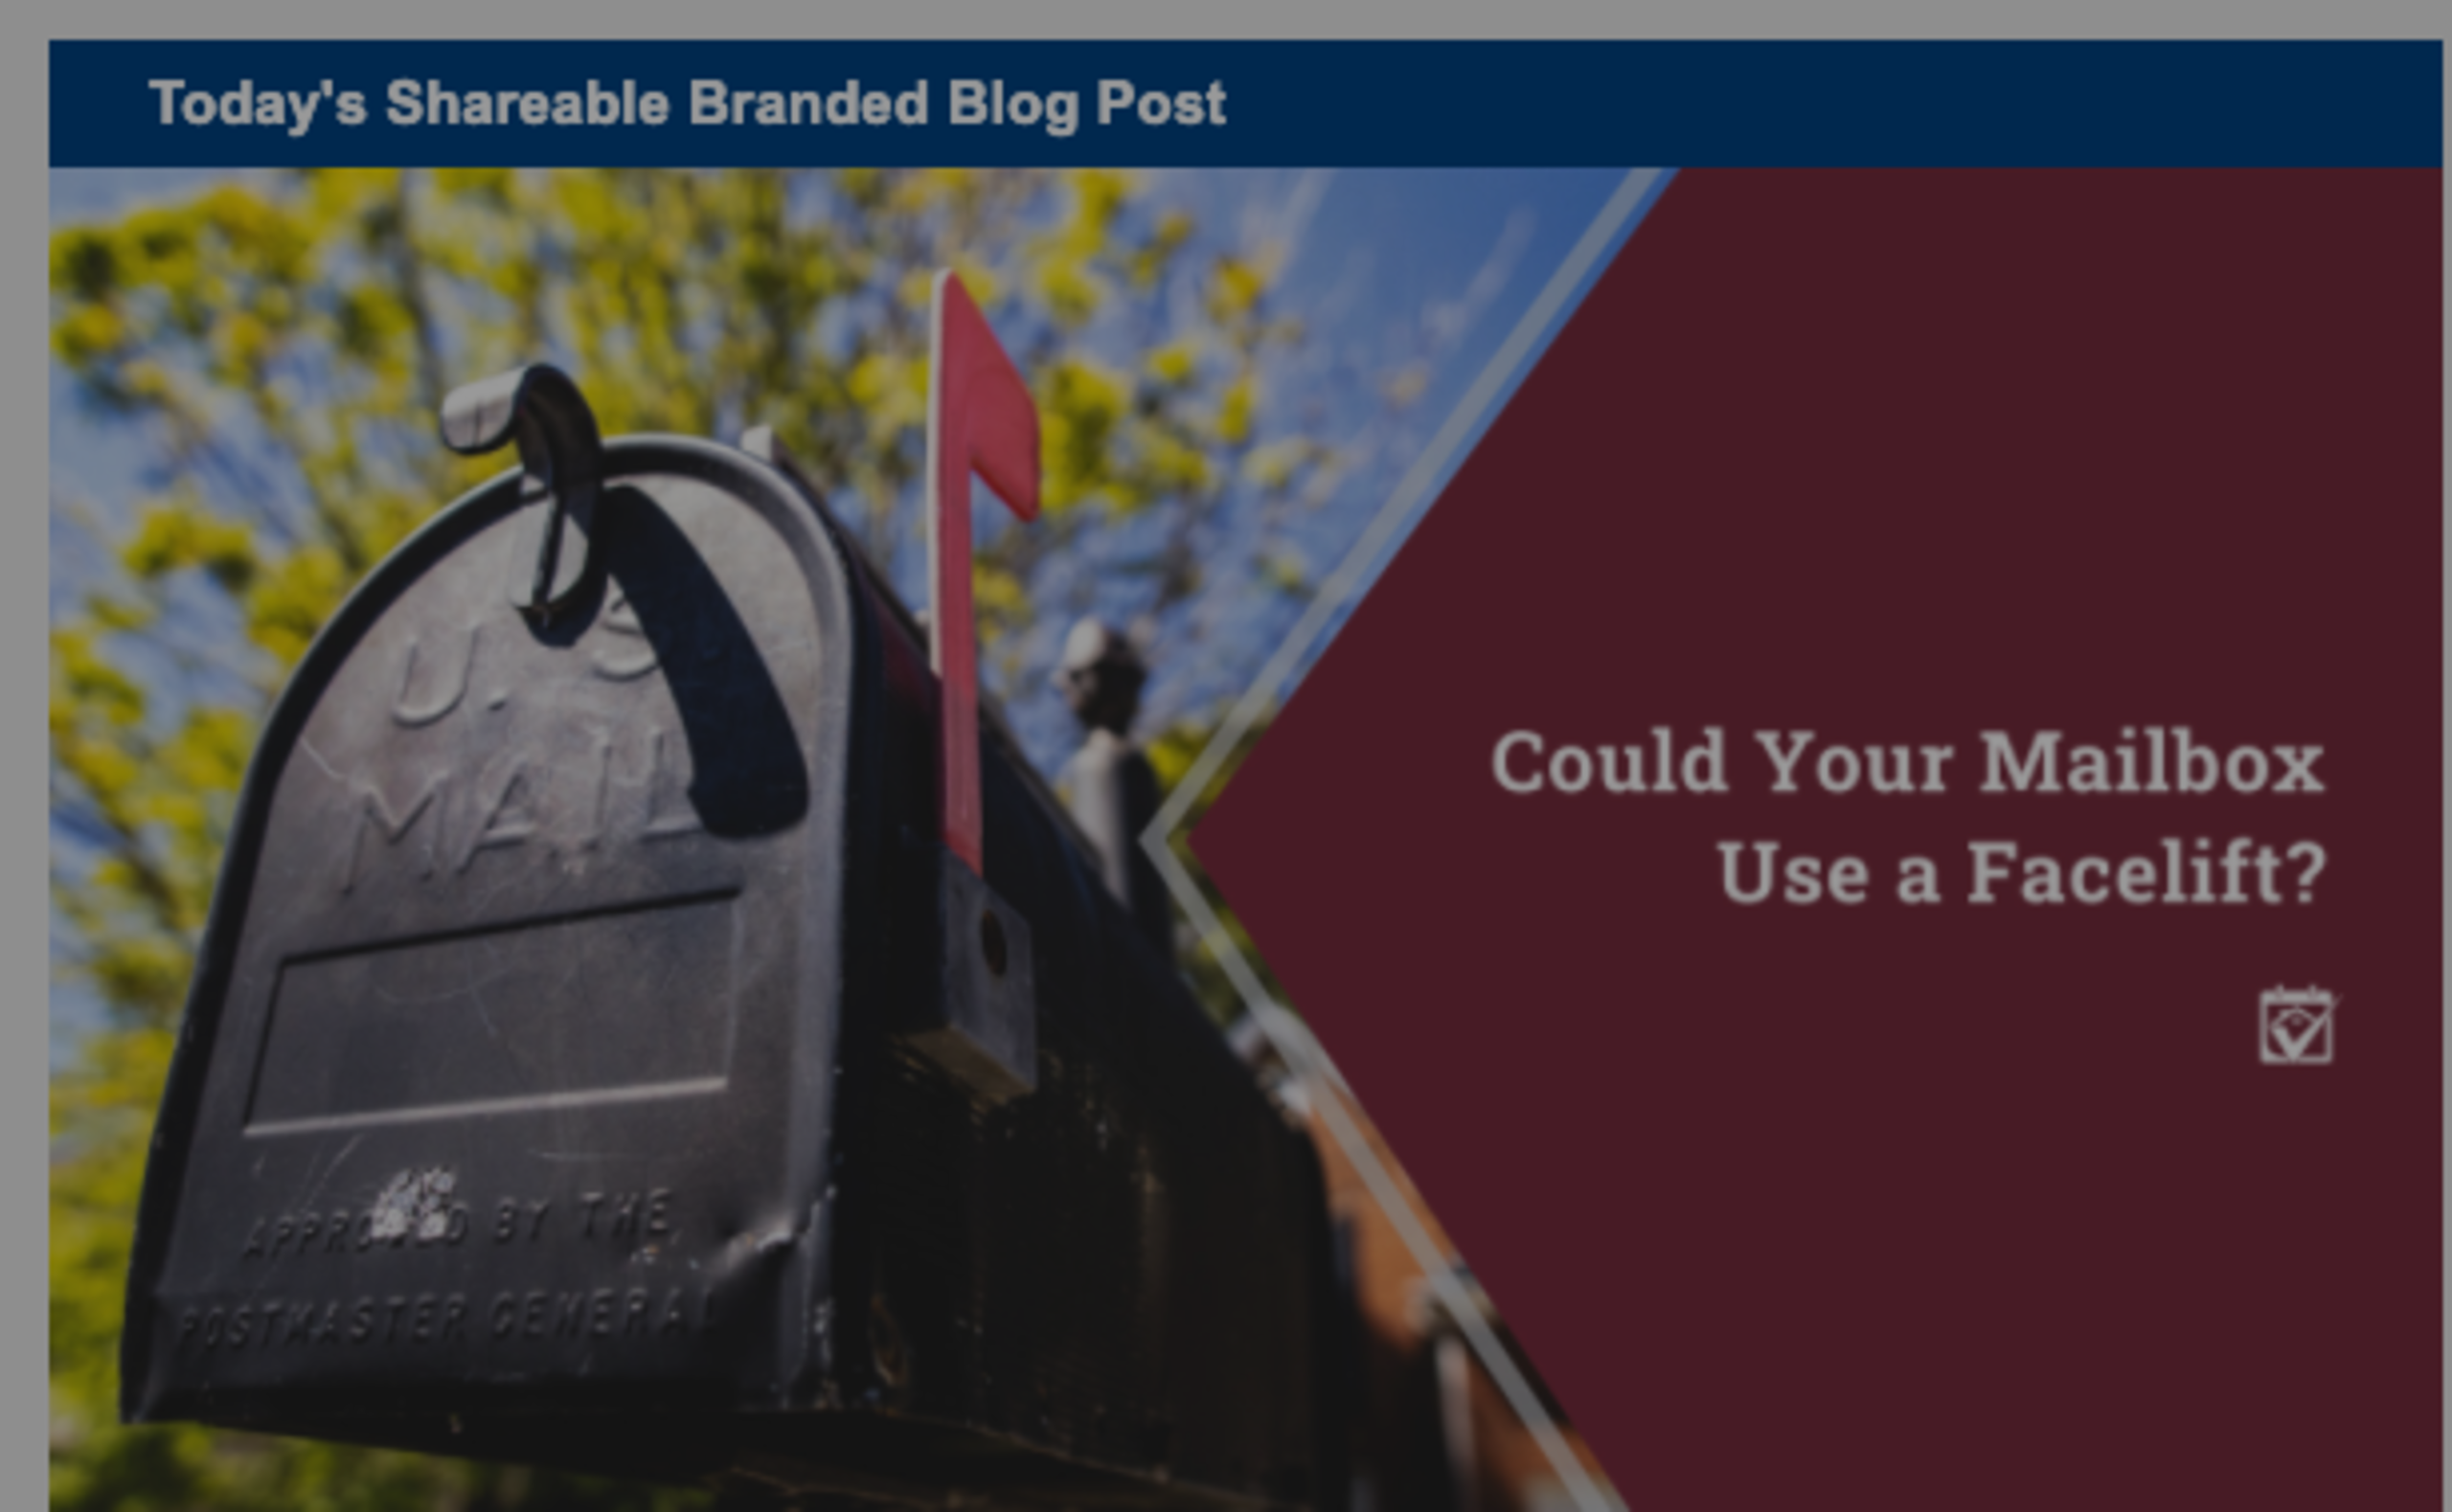 Could Your Mailbox Use a Facelift?